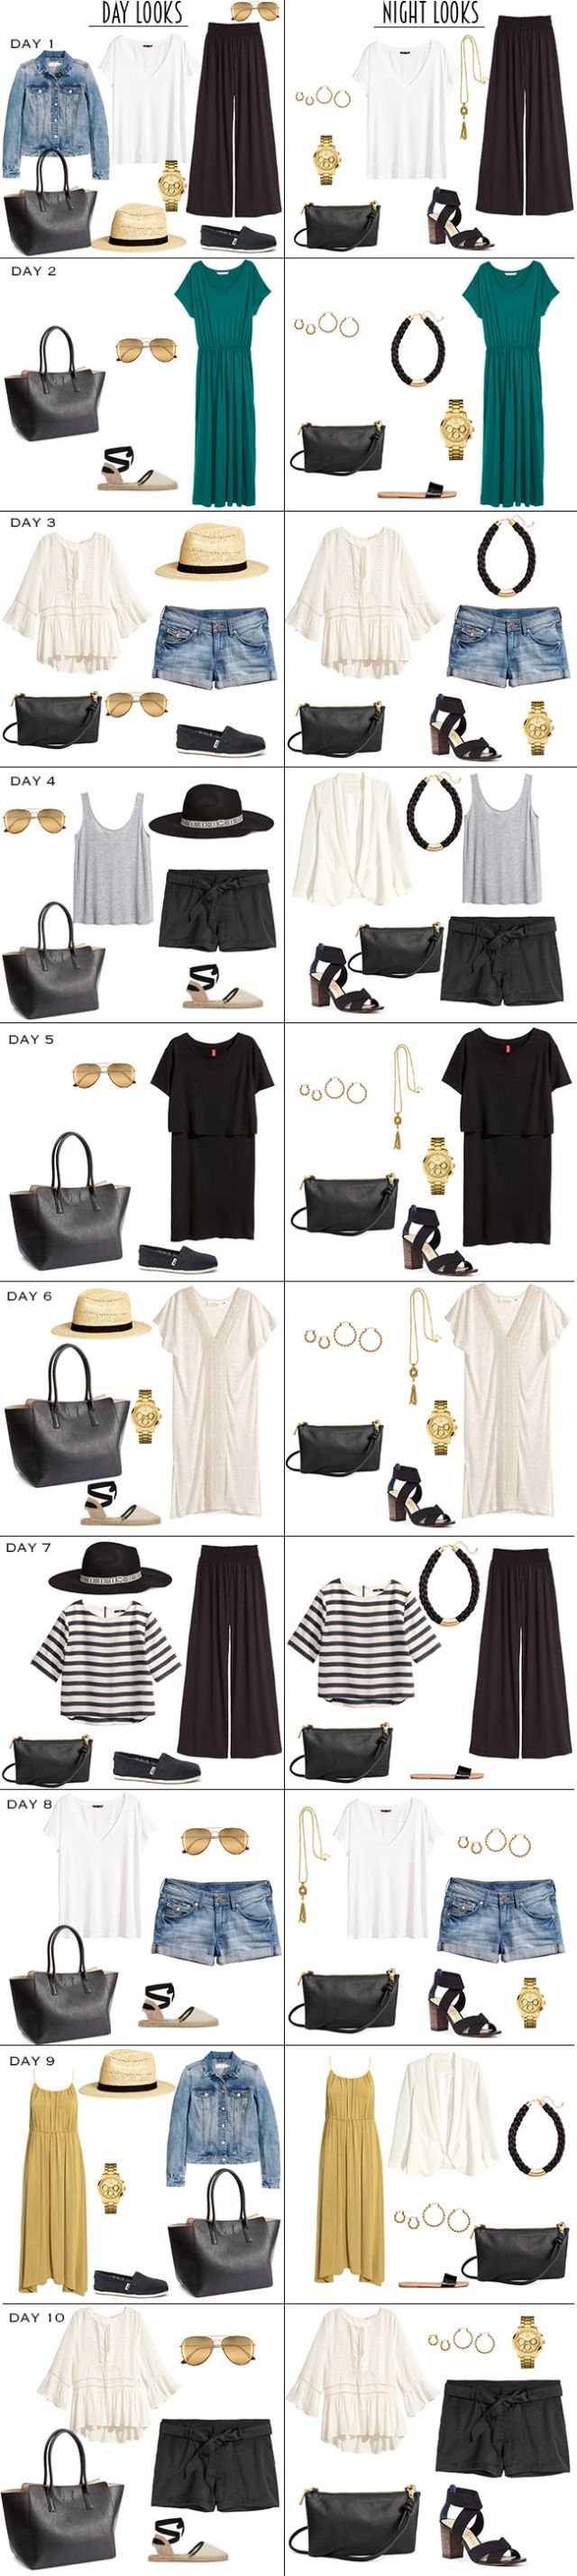 Day To Night Looks Caribbean for 14 Days at a resort. Packing light in a carry-on. #packinglight #travellight #packinglist